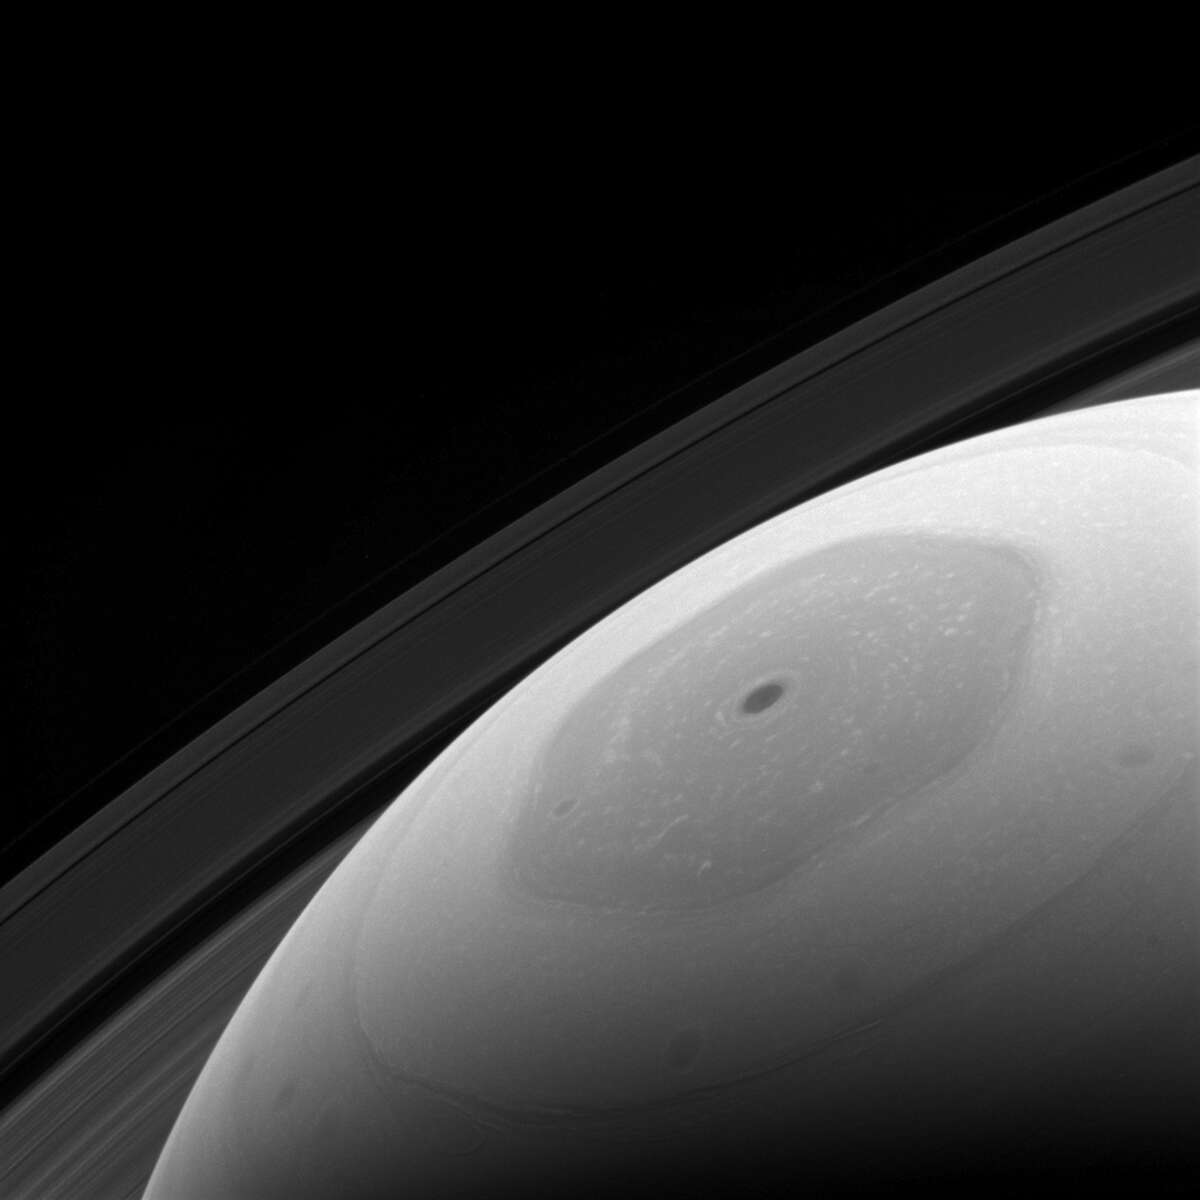 Photos: Saturn up close Cassini is orbiting Saturn closer than ever before as part of its